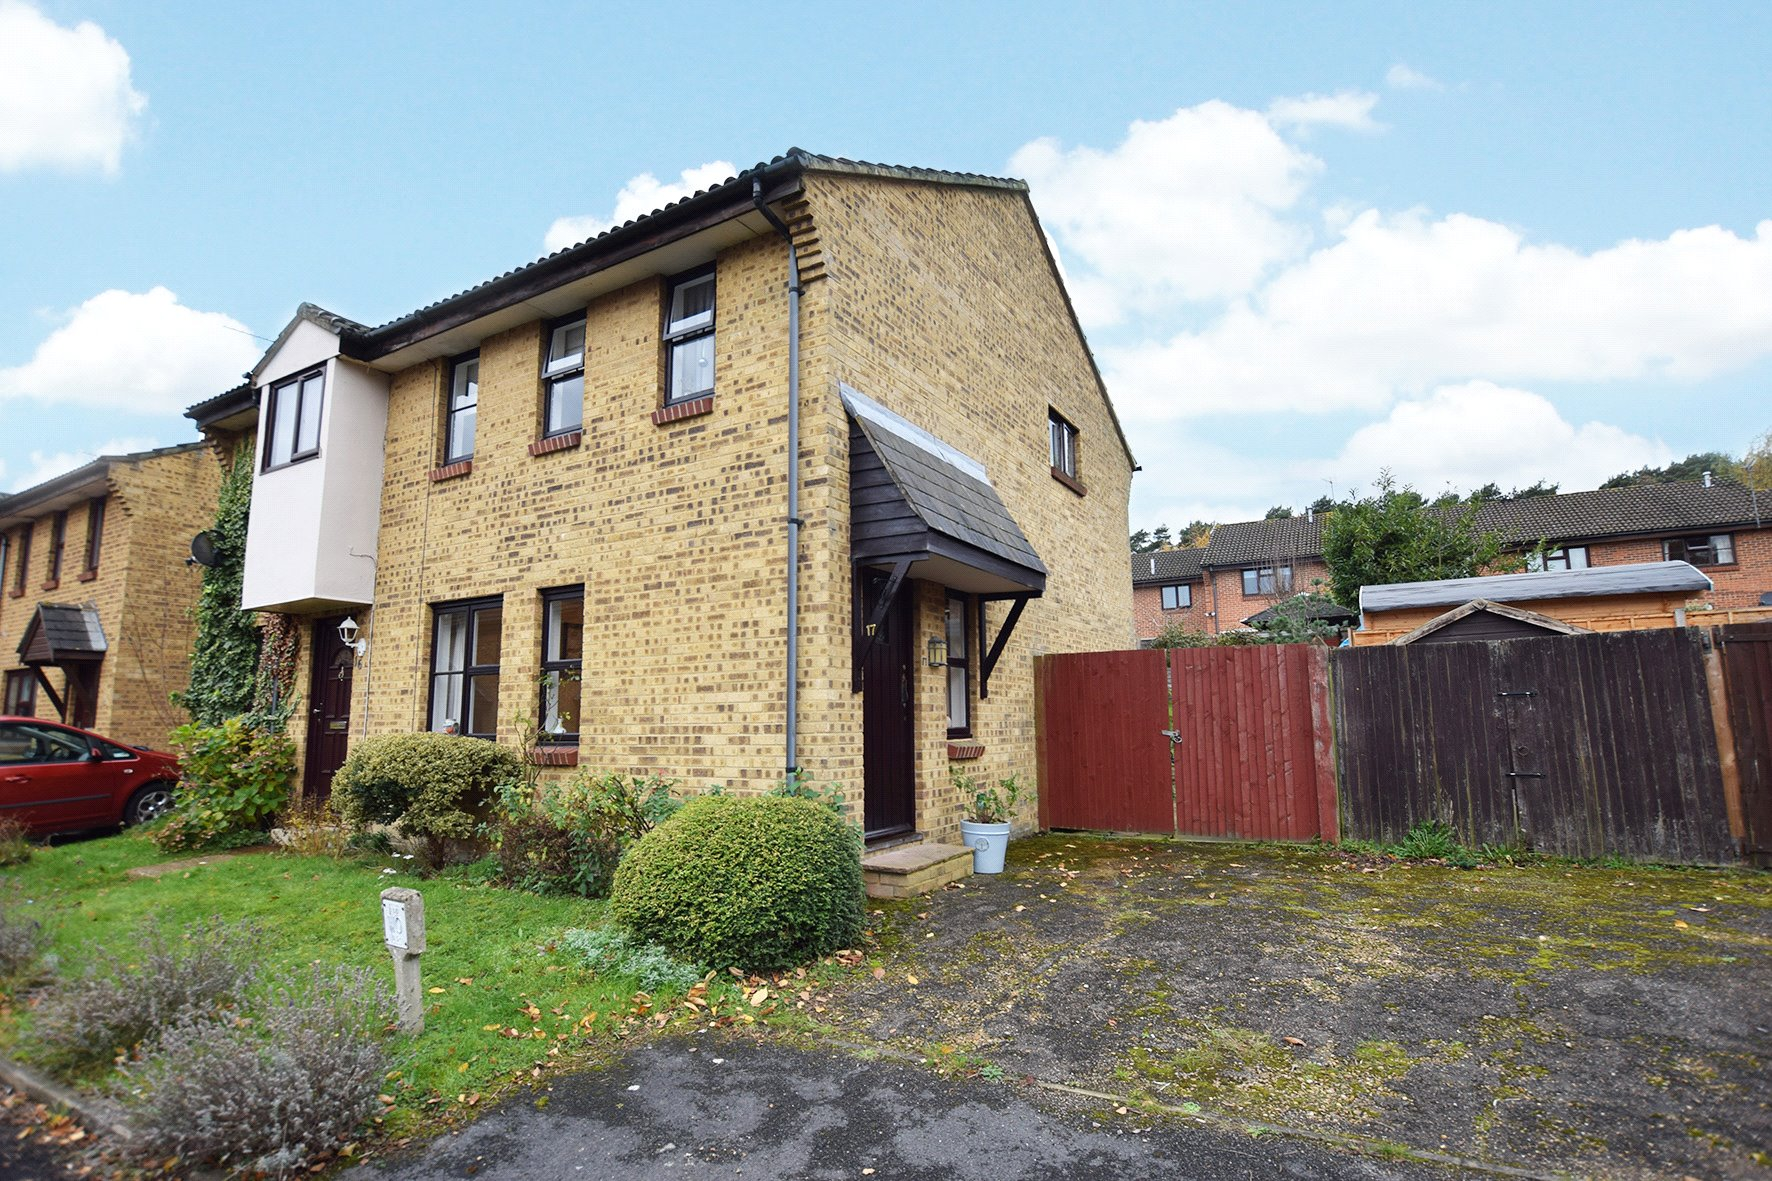 3 Bedrooms Semi Detached House for sale in Chisbury Close, Bracknell, Berkshire, RG12